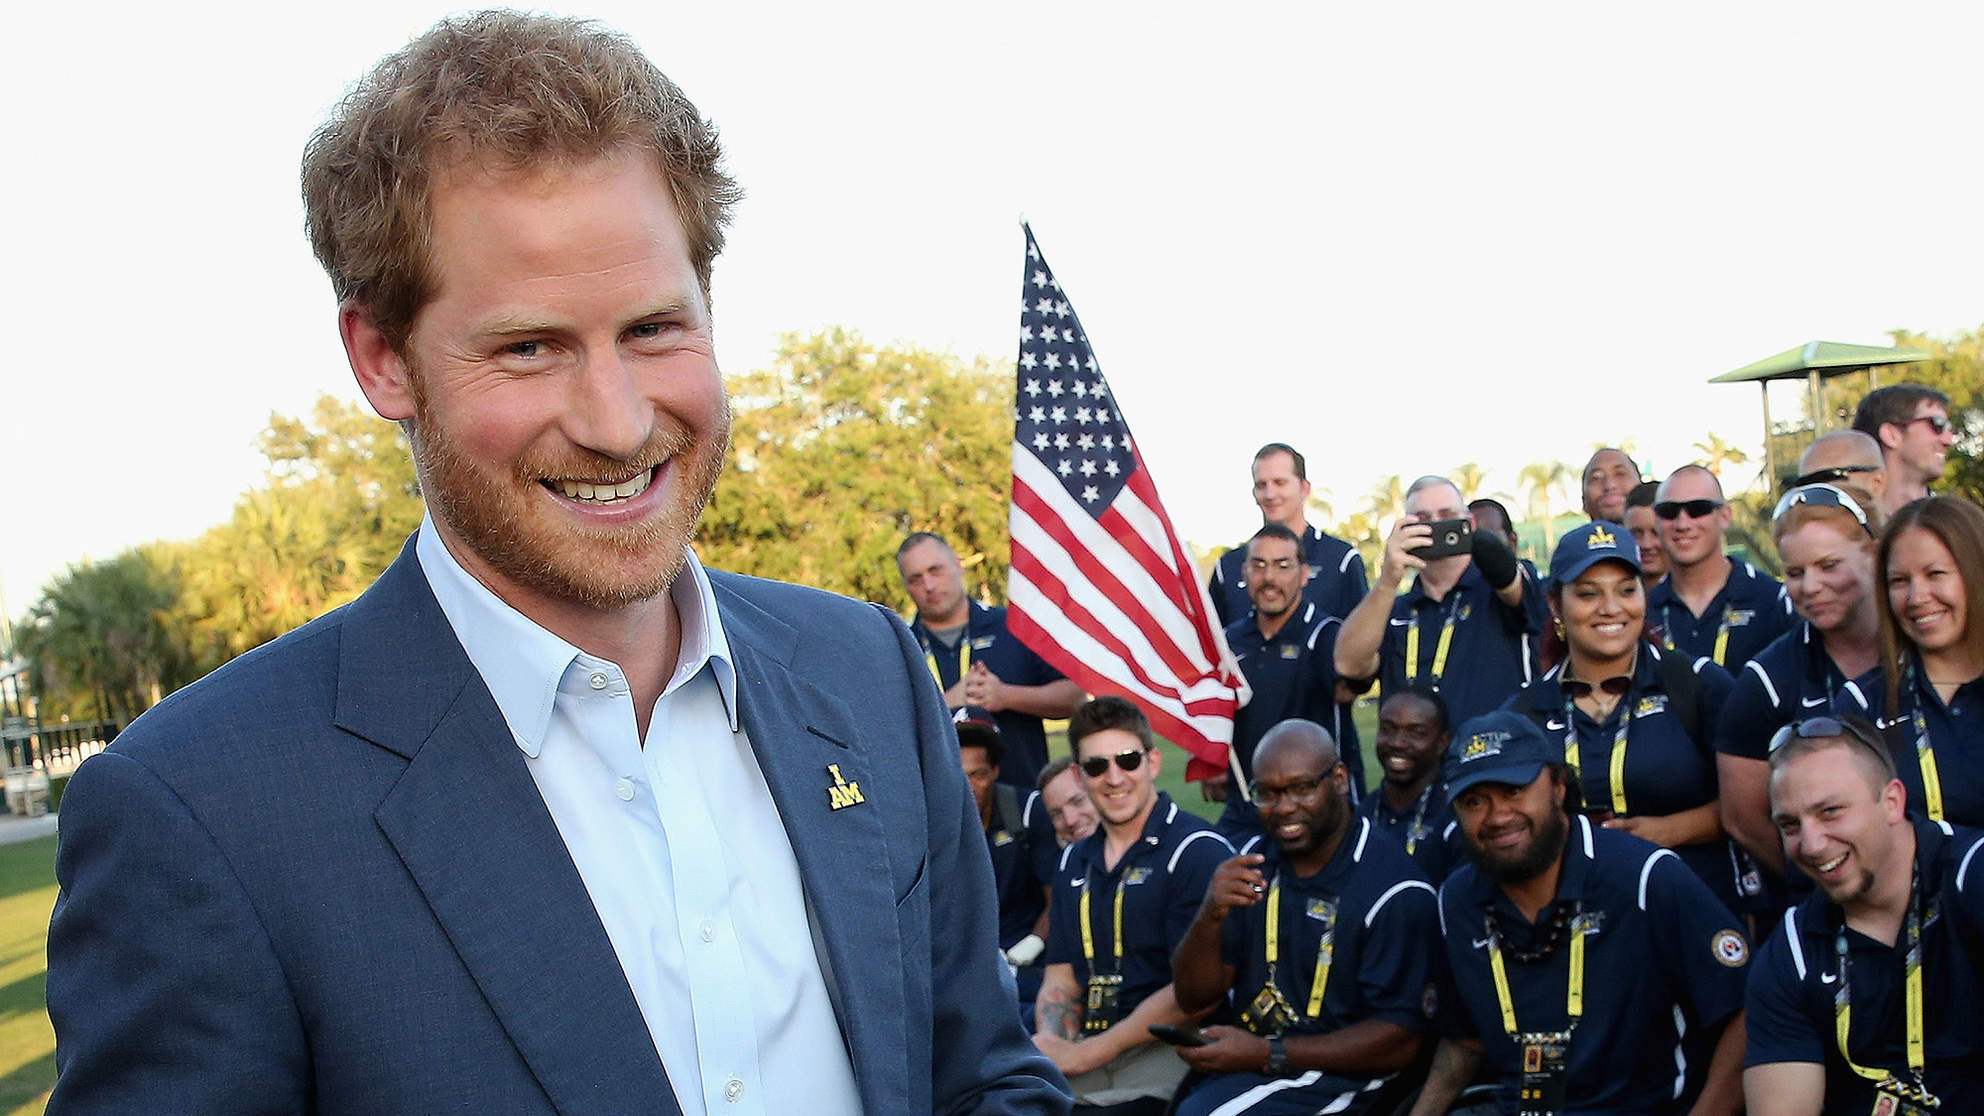 Prince Harry Admits He Suffered Panic Attacks After His Mother's Death: My Body 'Felt Like a Washing Machine'